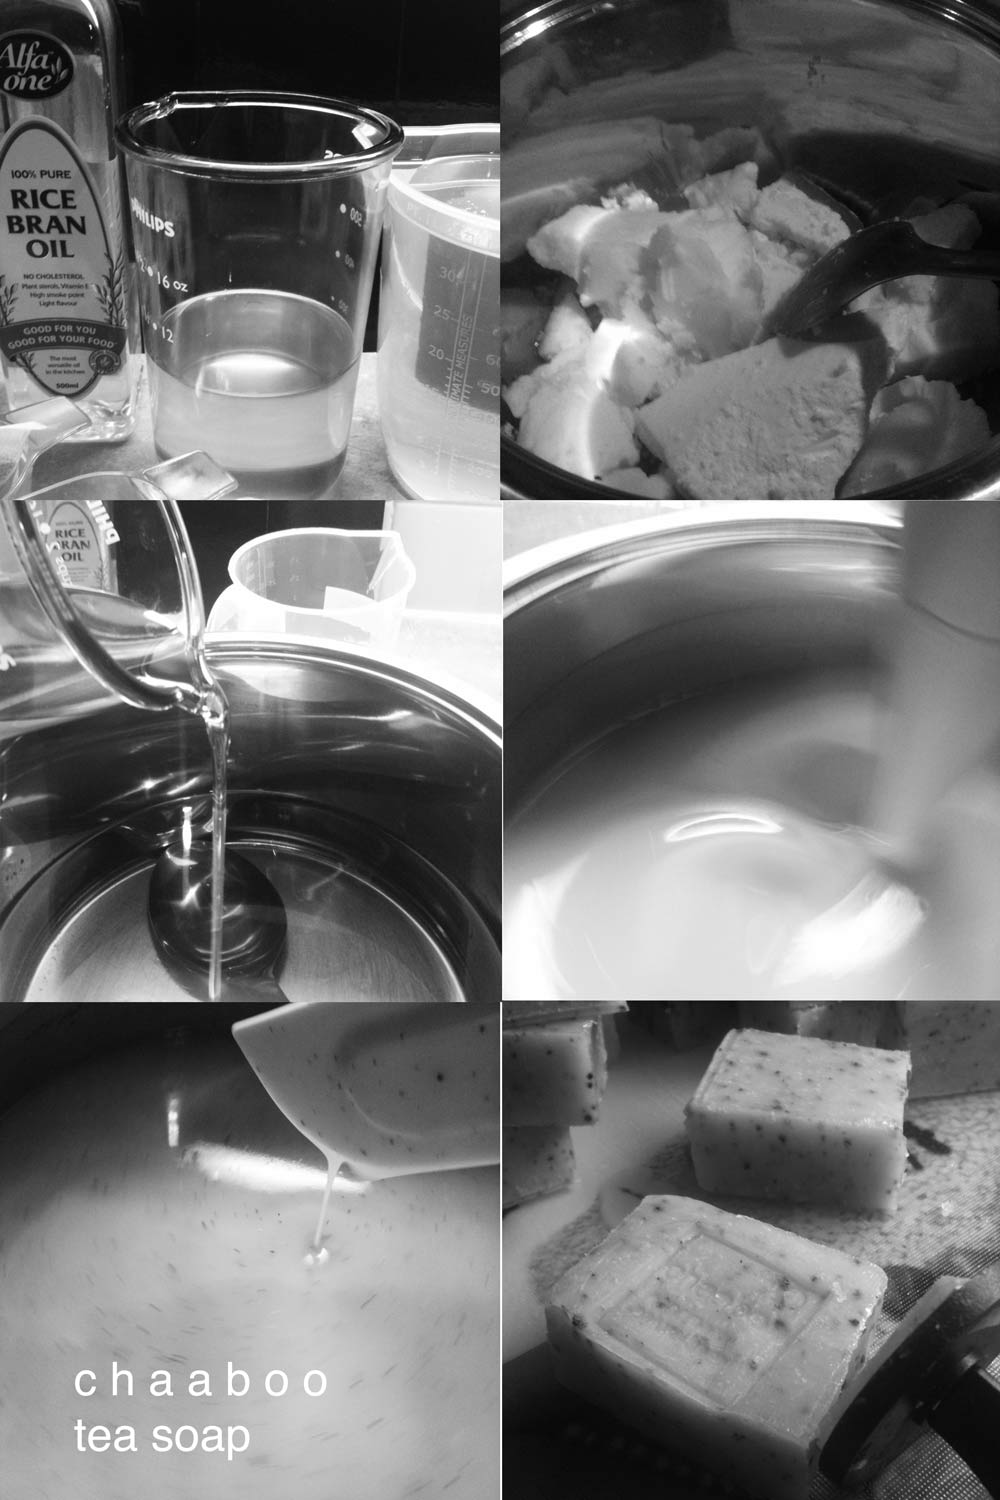 The soap is mixed, cooled, and stamped before it's ready to cure.